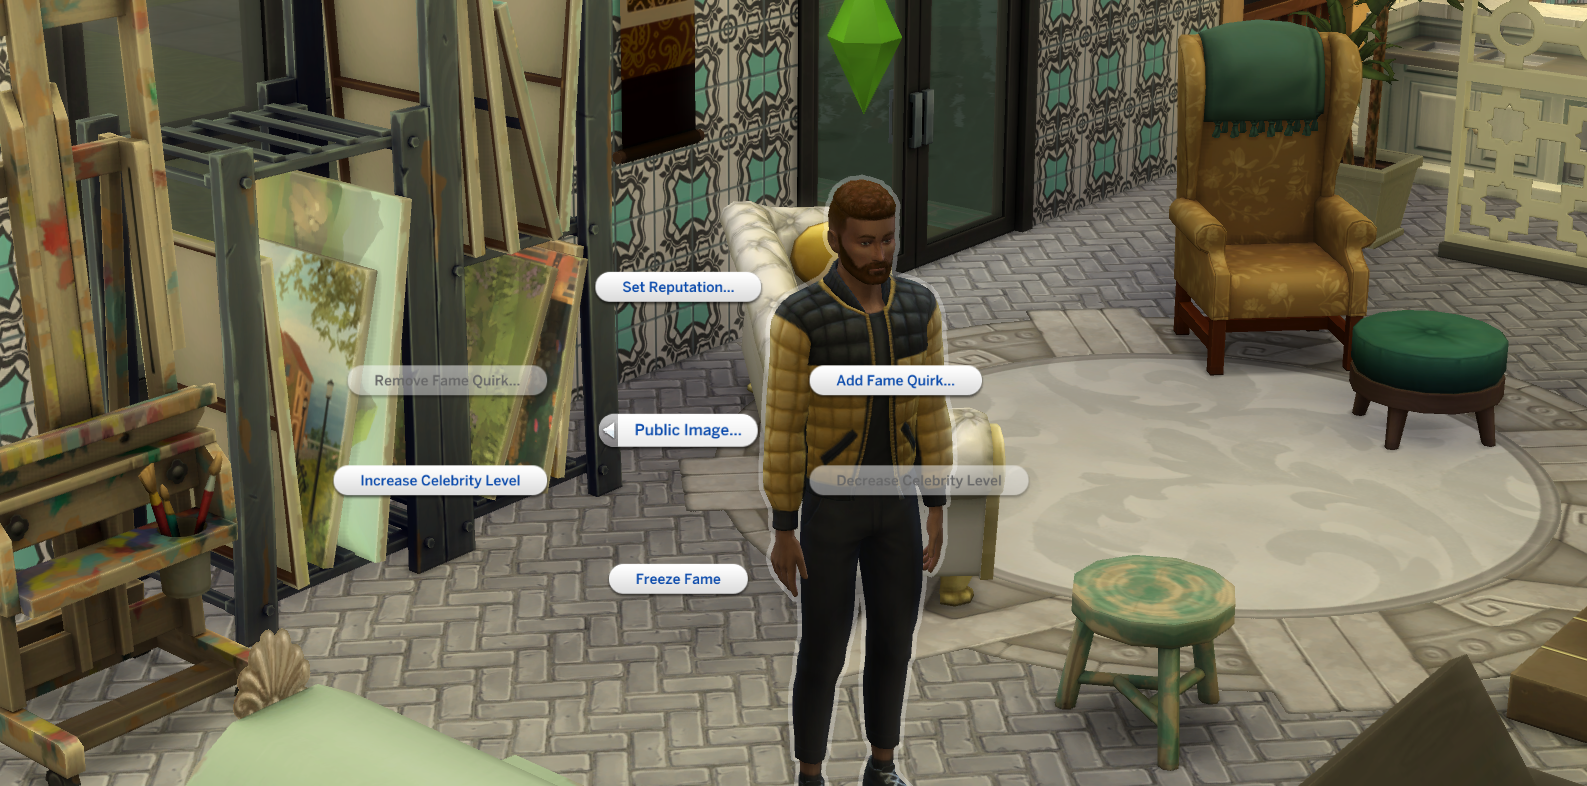 sims 4 cheats get famous quirk reputation fame public image